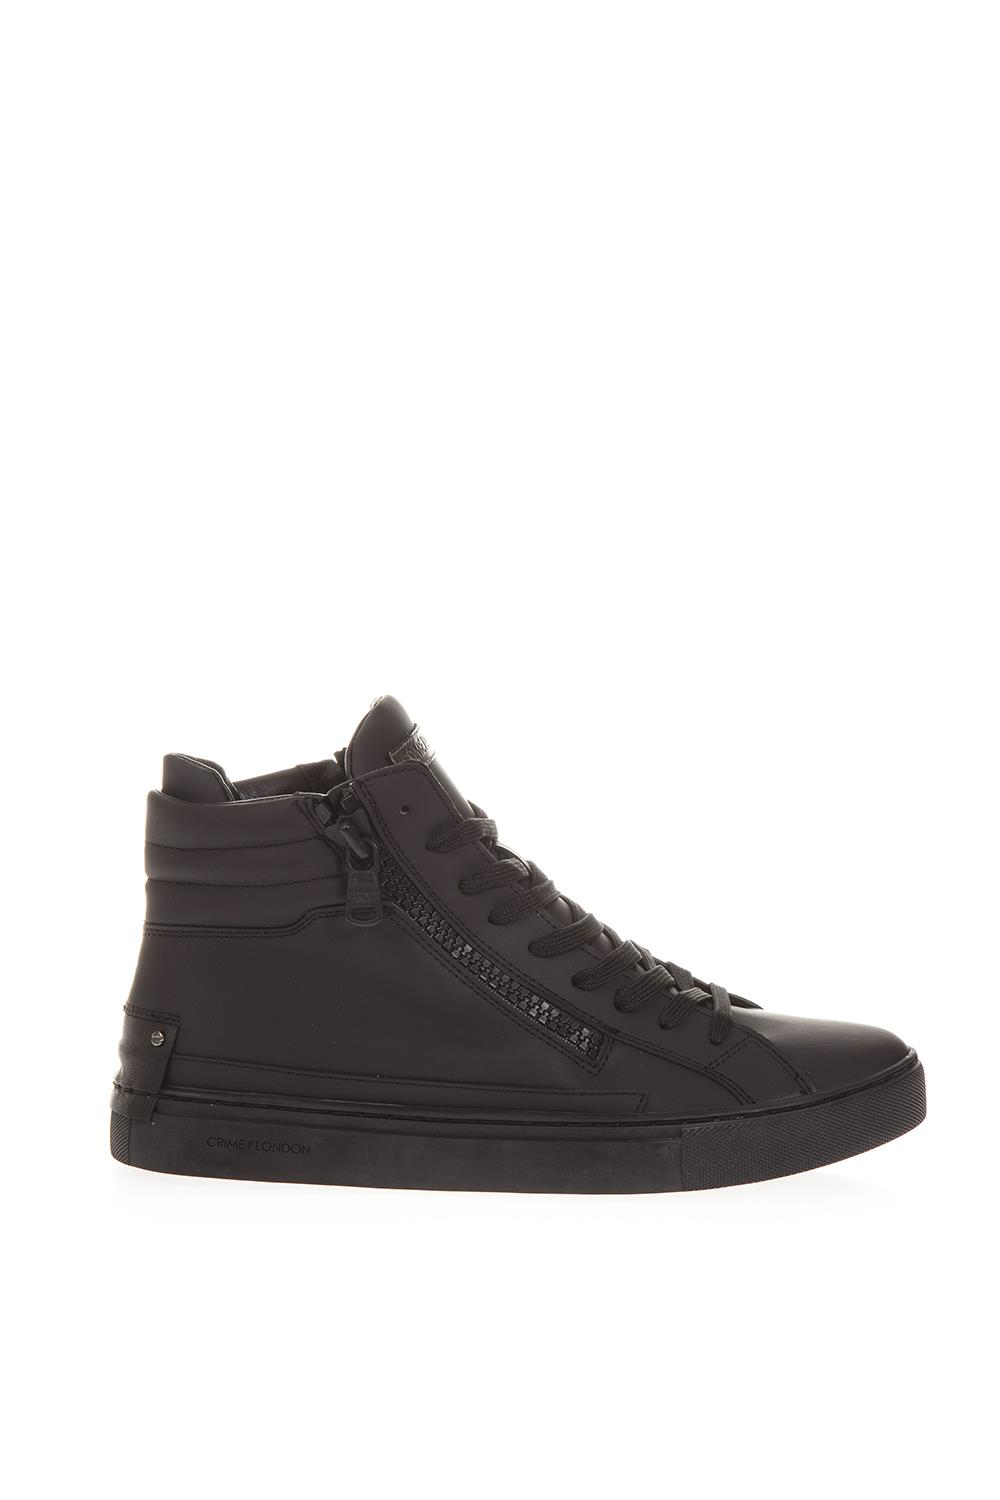 bb28fc626a698 HIGH-TOP BLACK LEATHER SNEAKERS FW 2018 - CRIME LONDON - Boutique Galiano